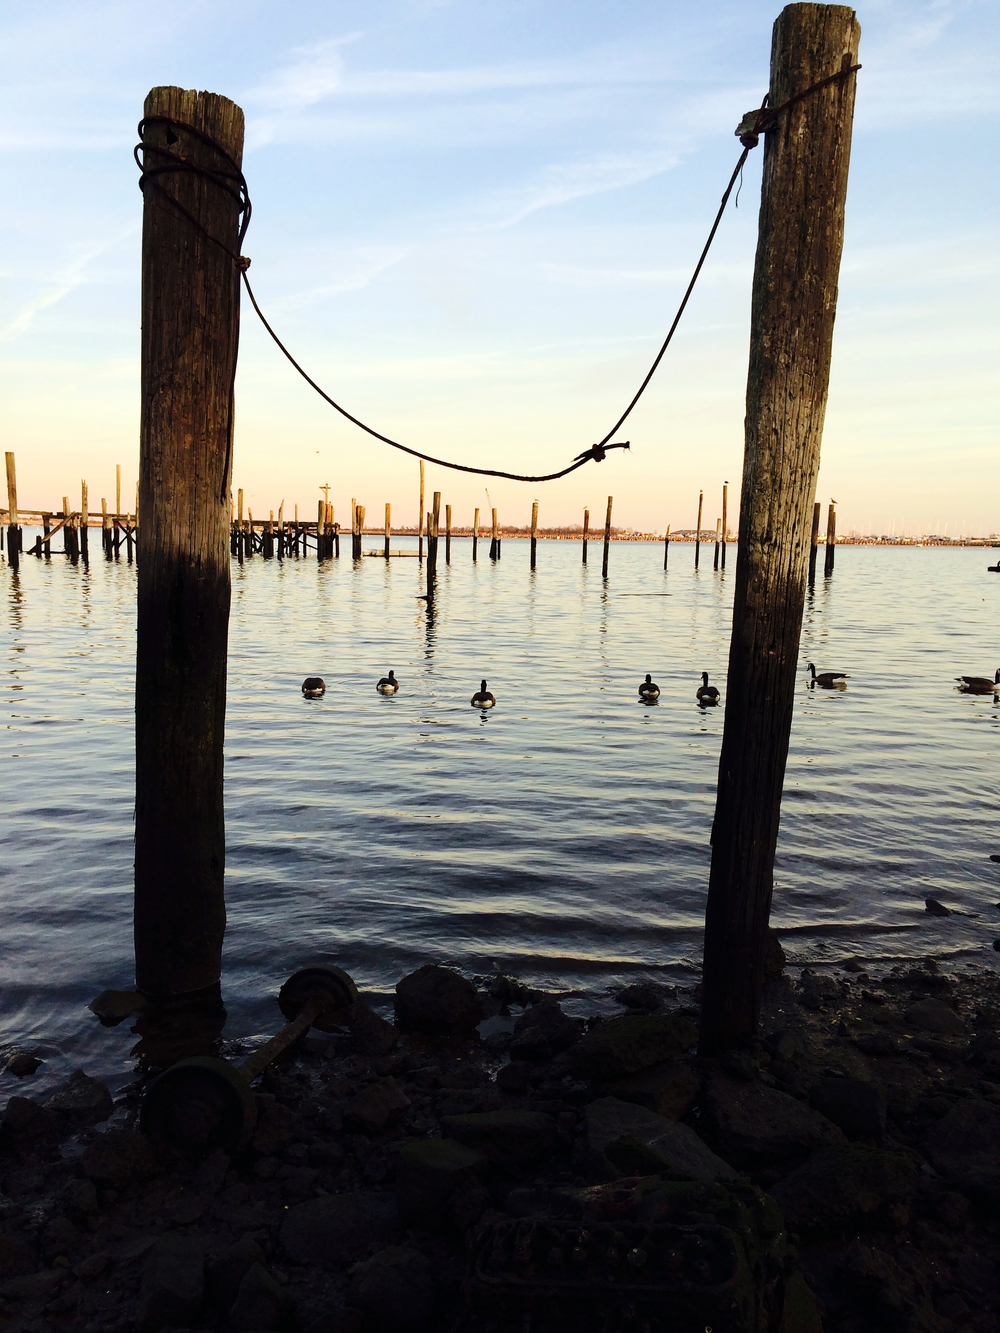 he remains of a pier, destroyed by Hurricane Sandy, on Great Kills in Staten Island - December 27, 2014